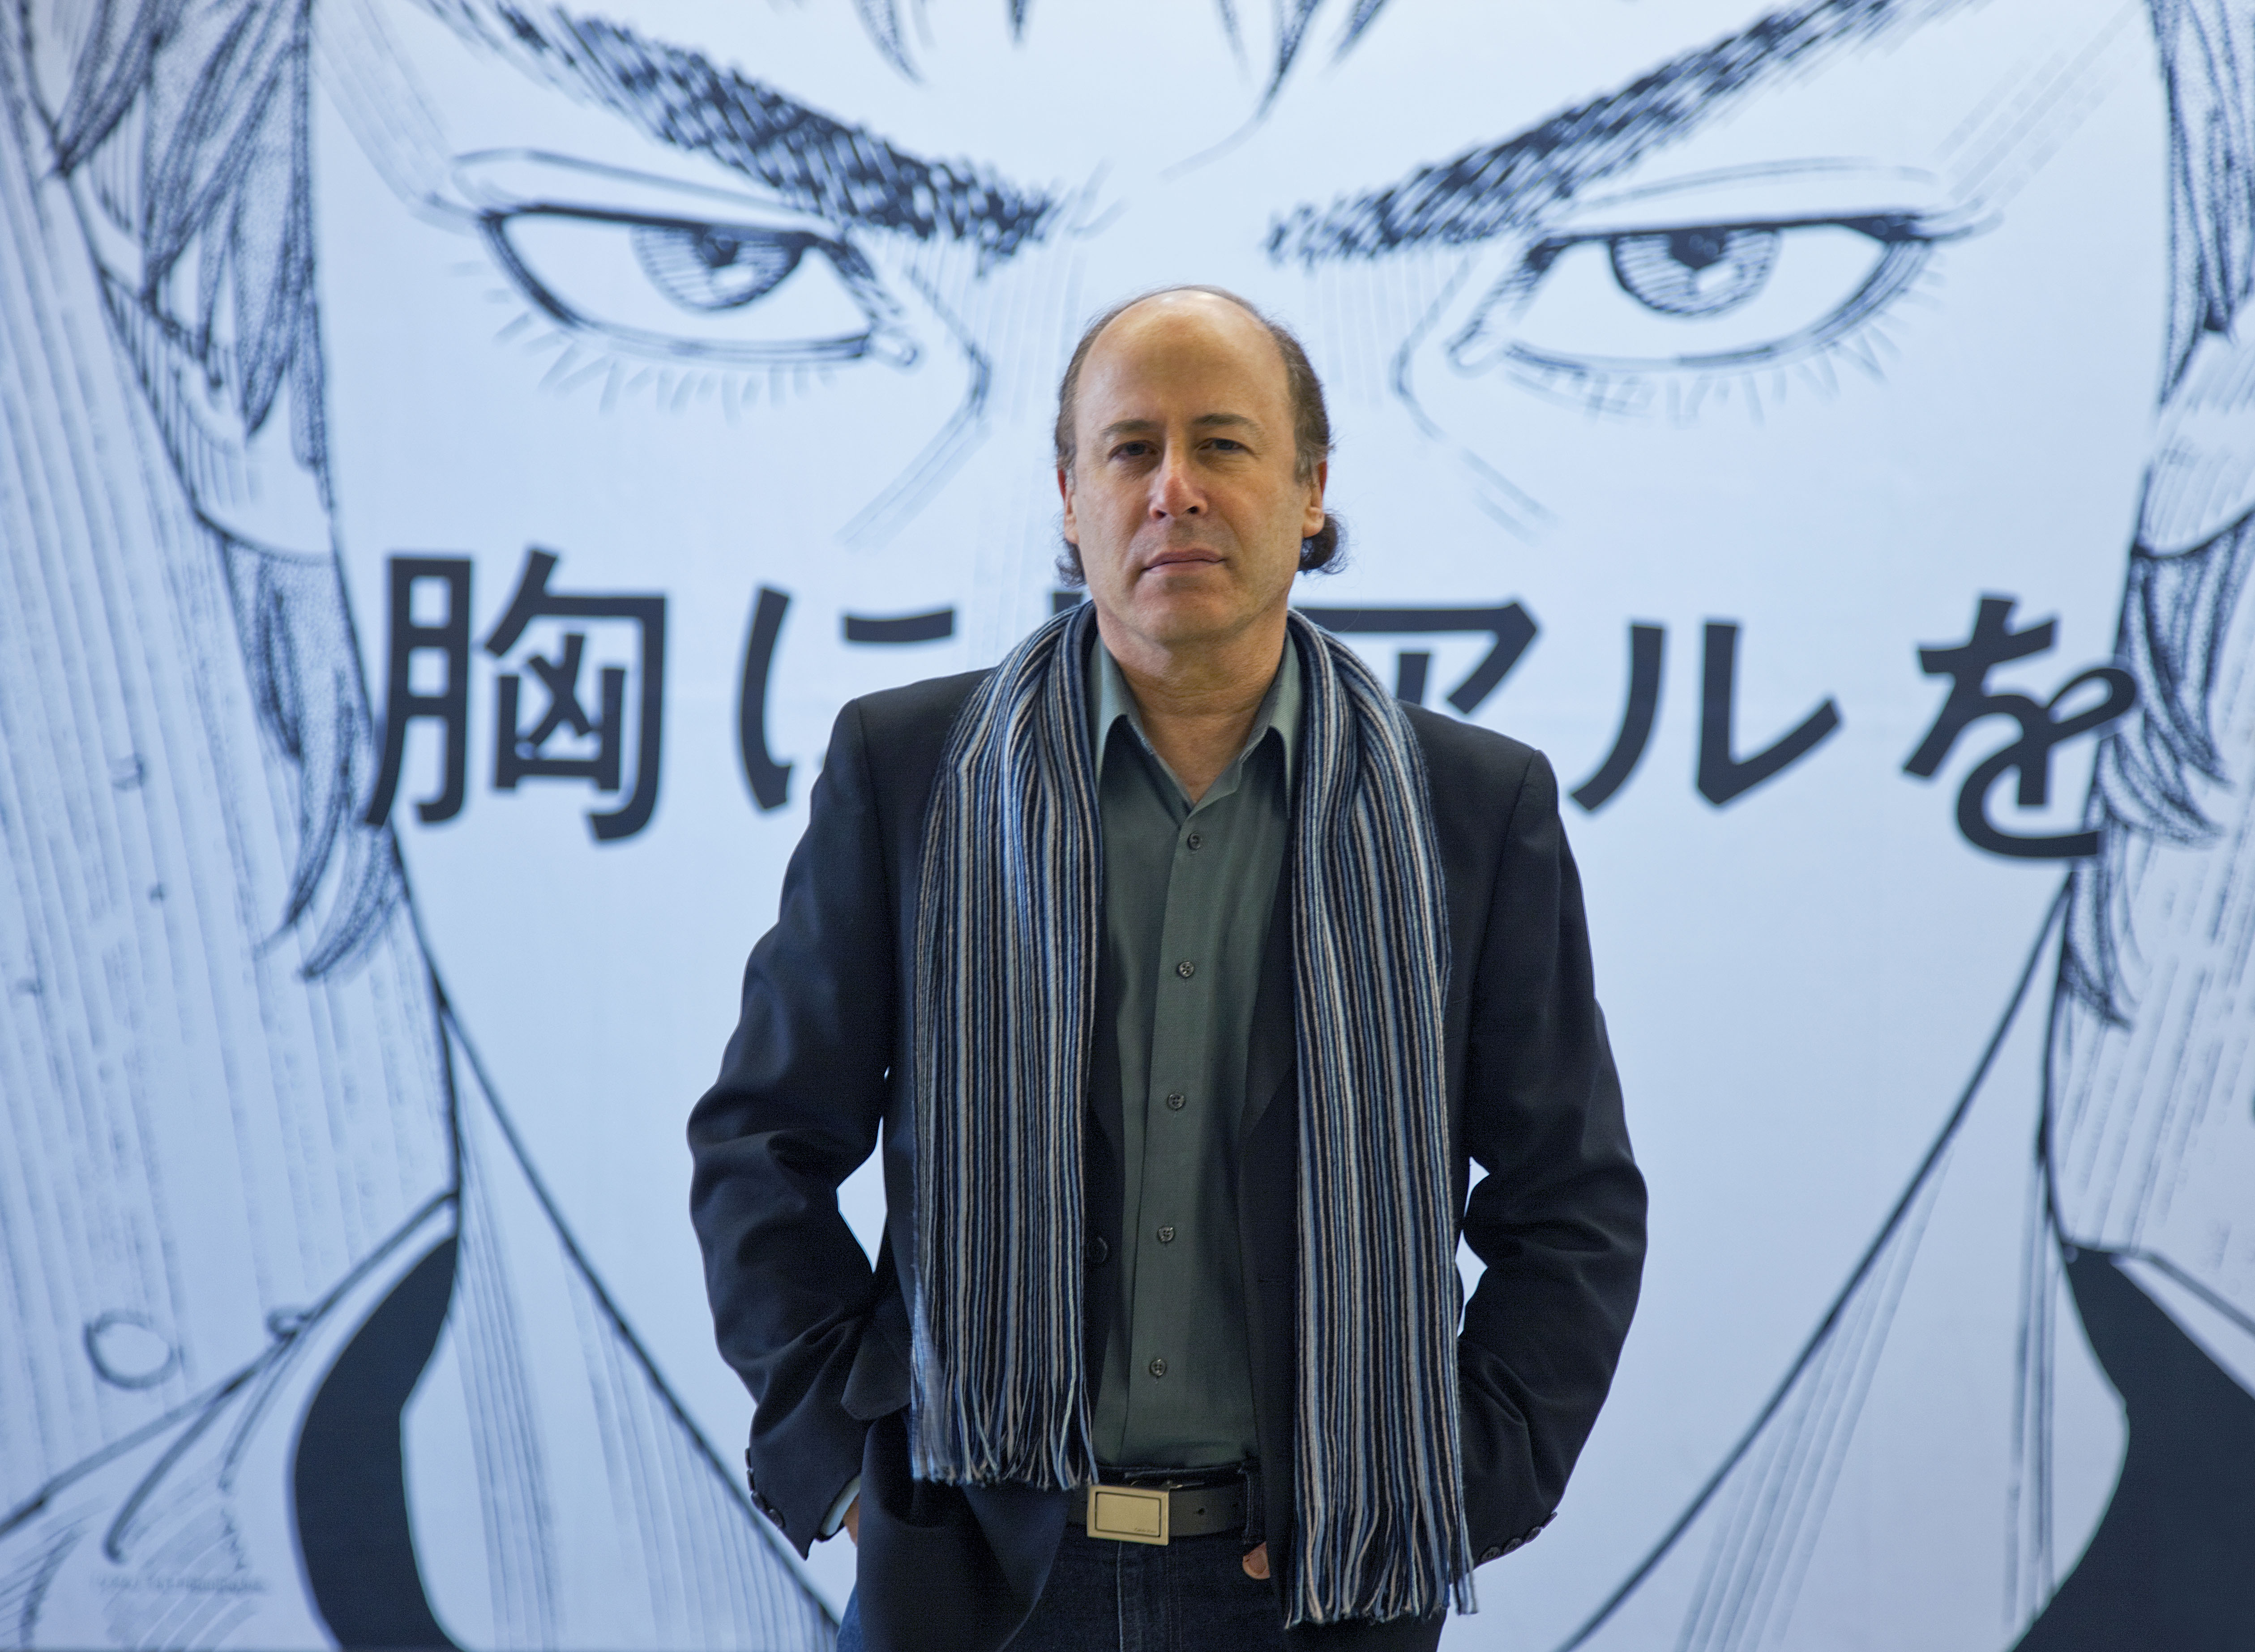 Hardboiled: The core idea behind Barry Lancet's first novel 'Japantown' is to mix his knowledge of Japanese culture with a page-turning thriller.   Ben Simmons